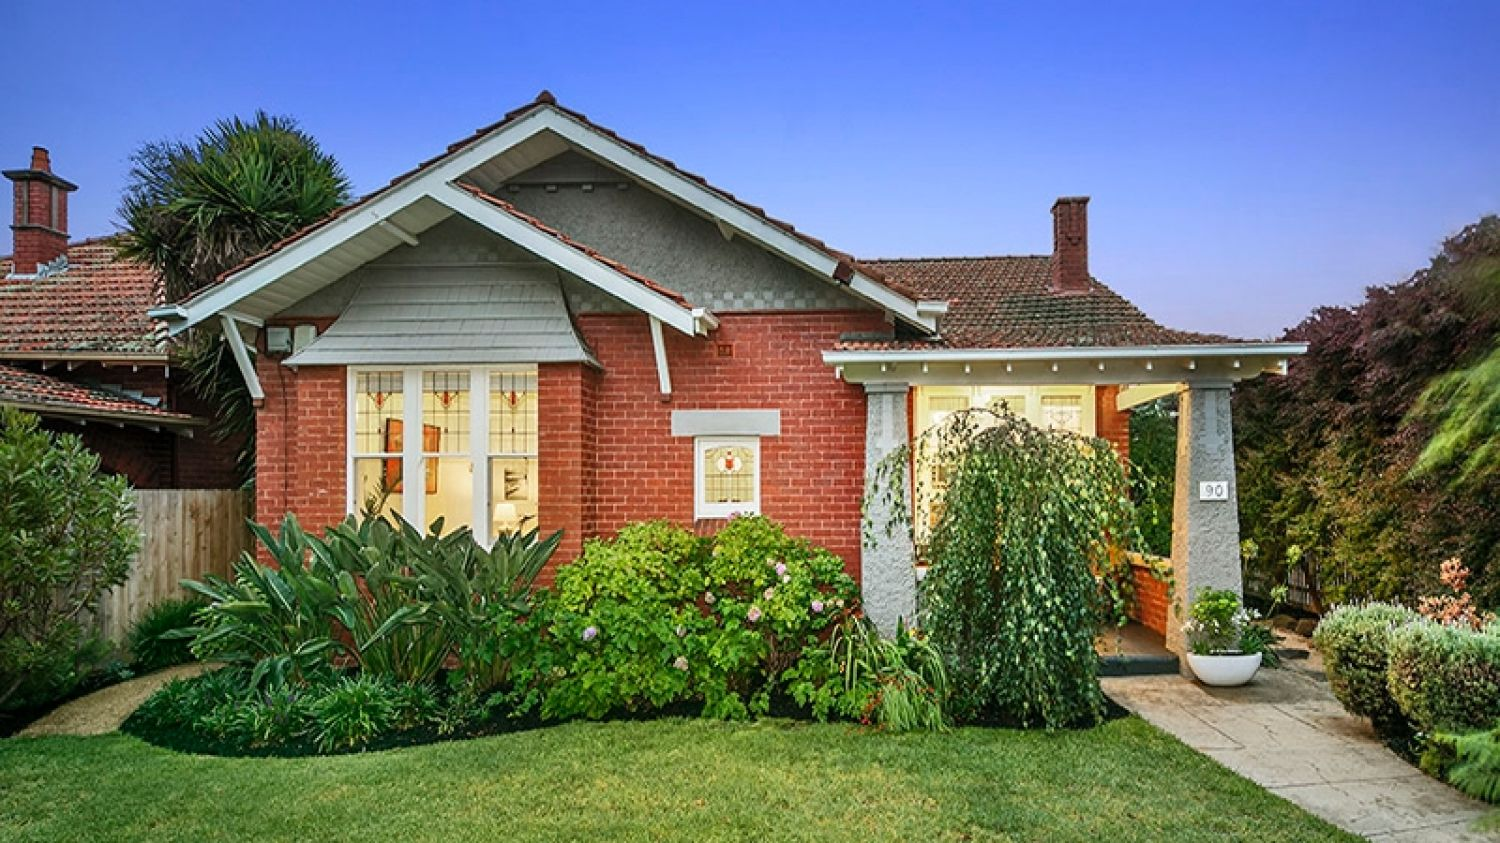 Melbourne suburbs where you can't buy a house for under $1 million